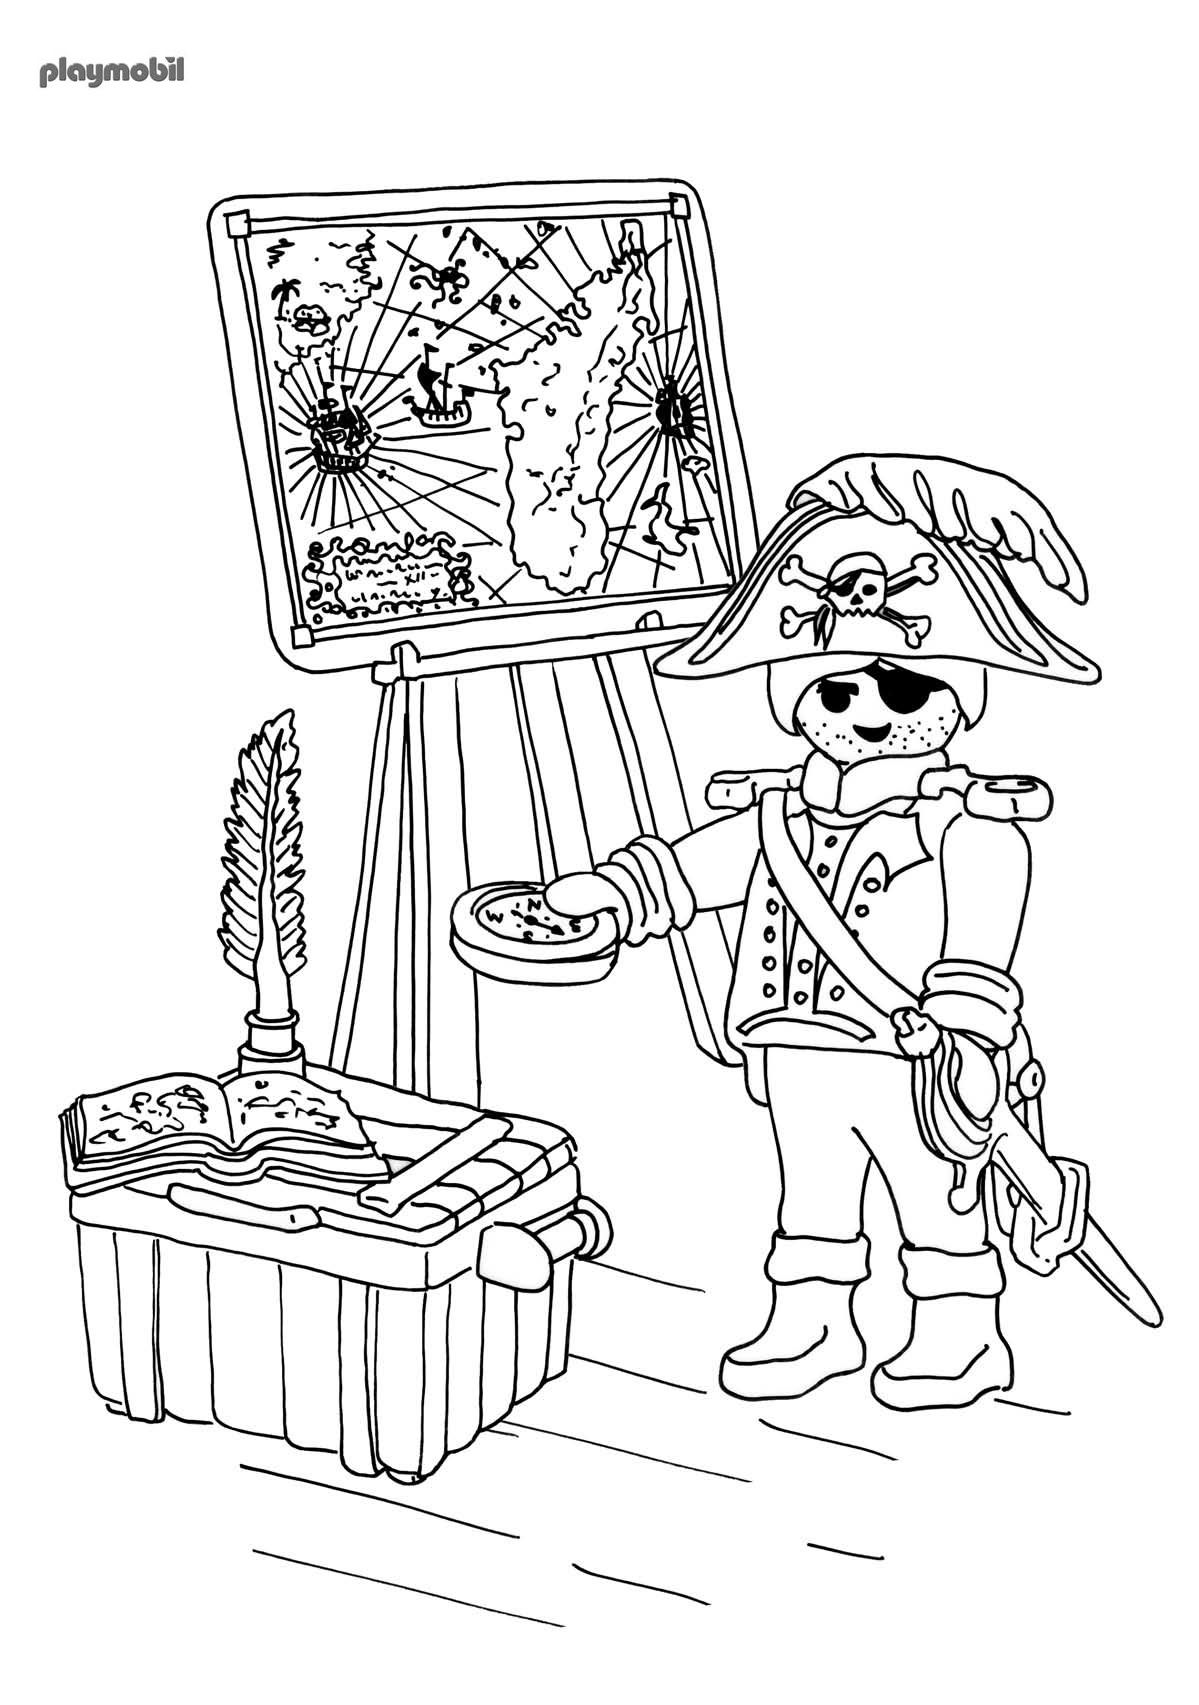 Coloriage Pirate Coloring Pages Pinterest